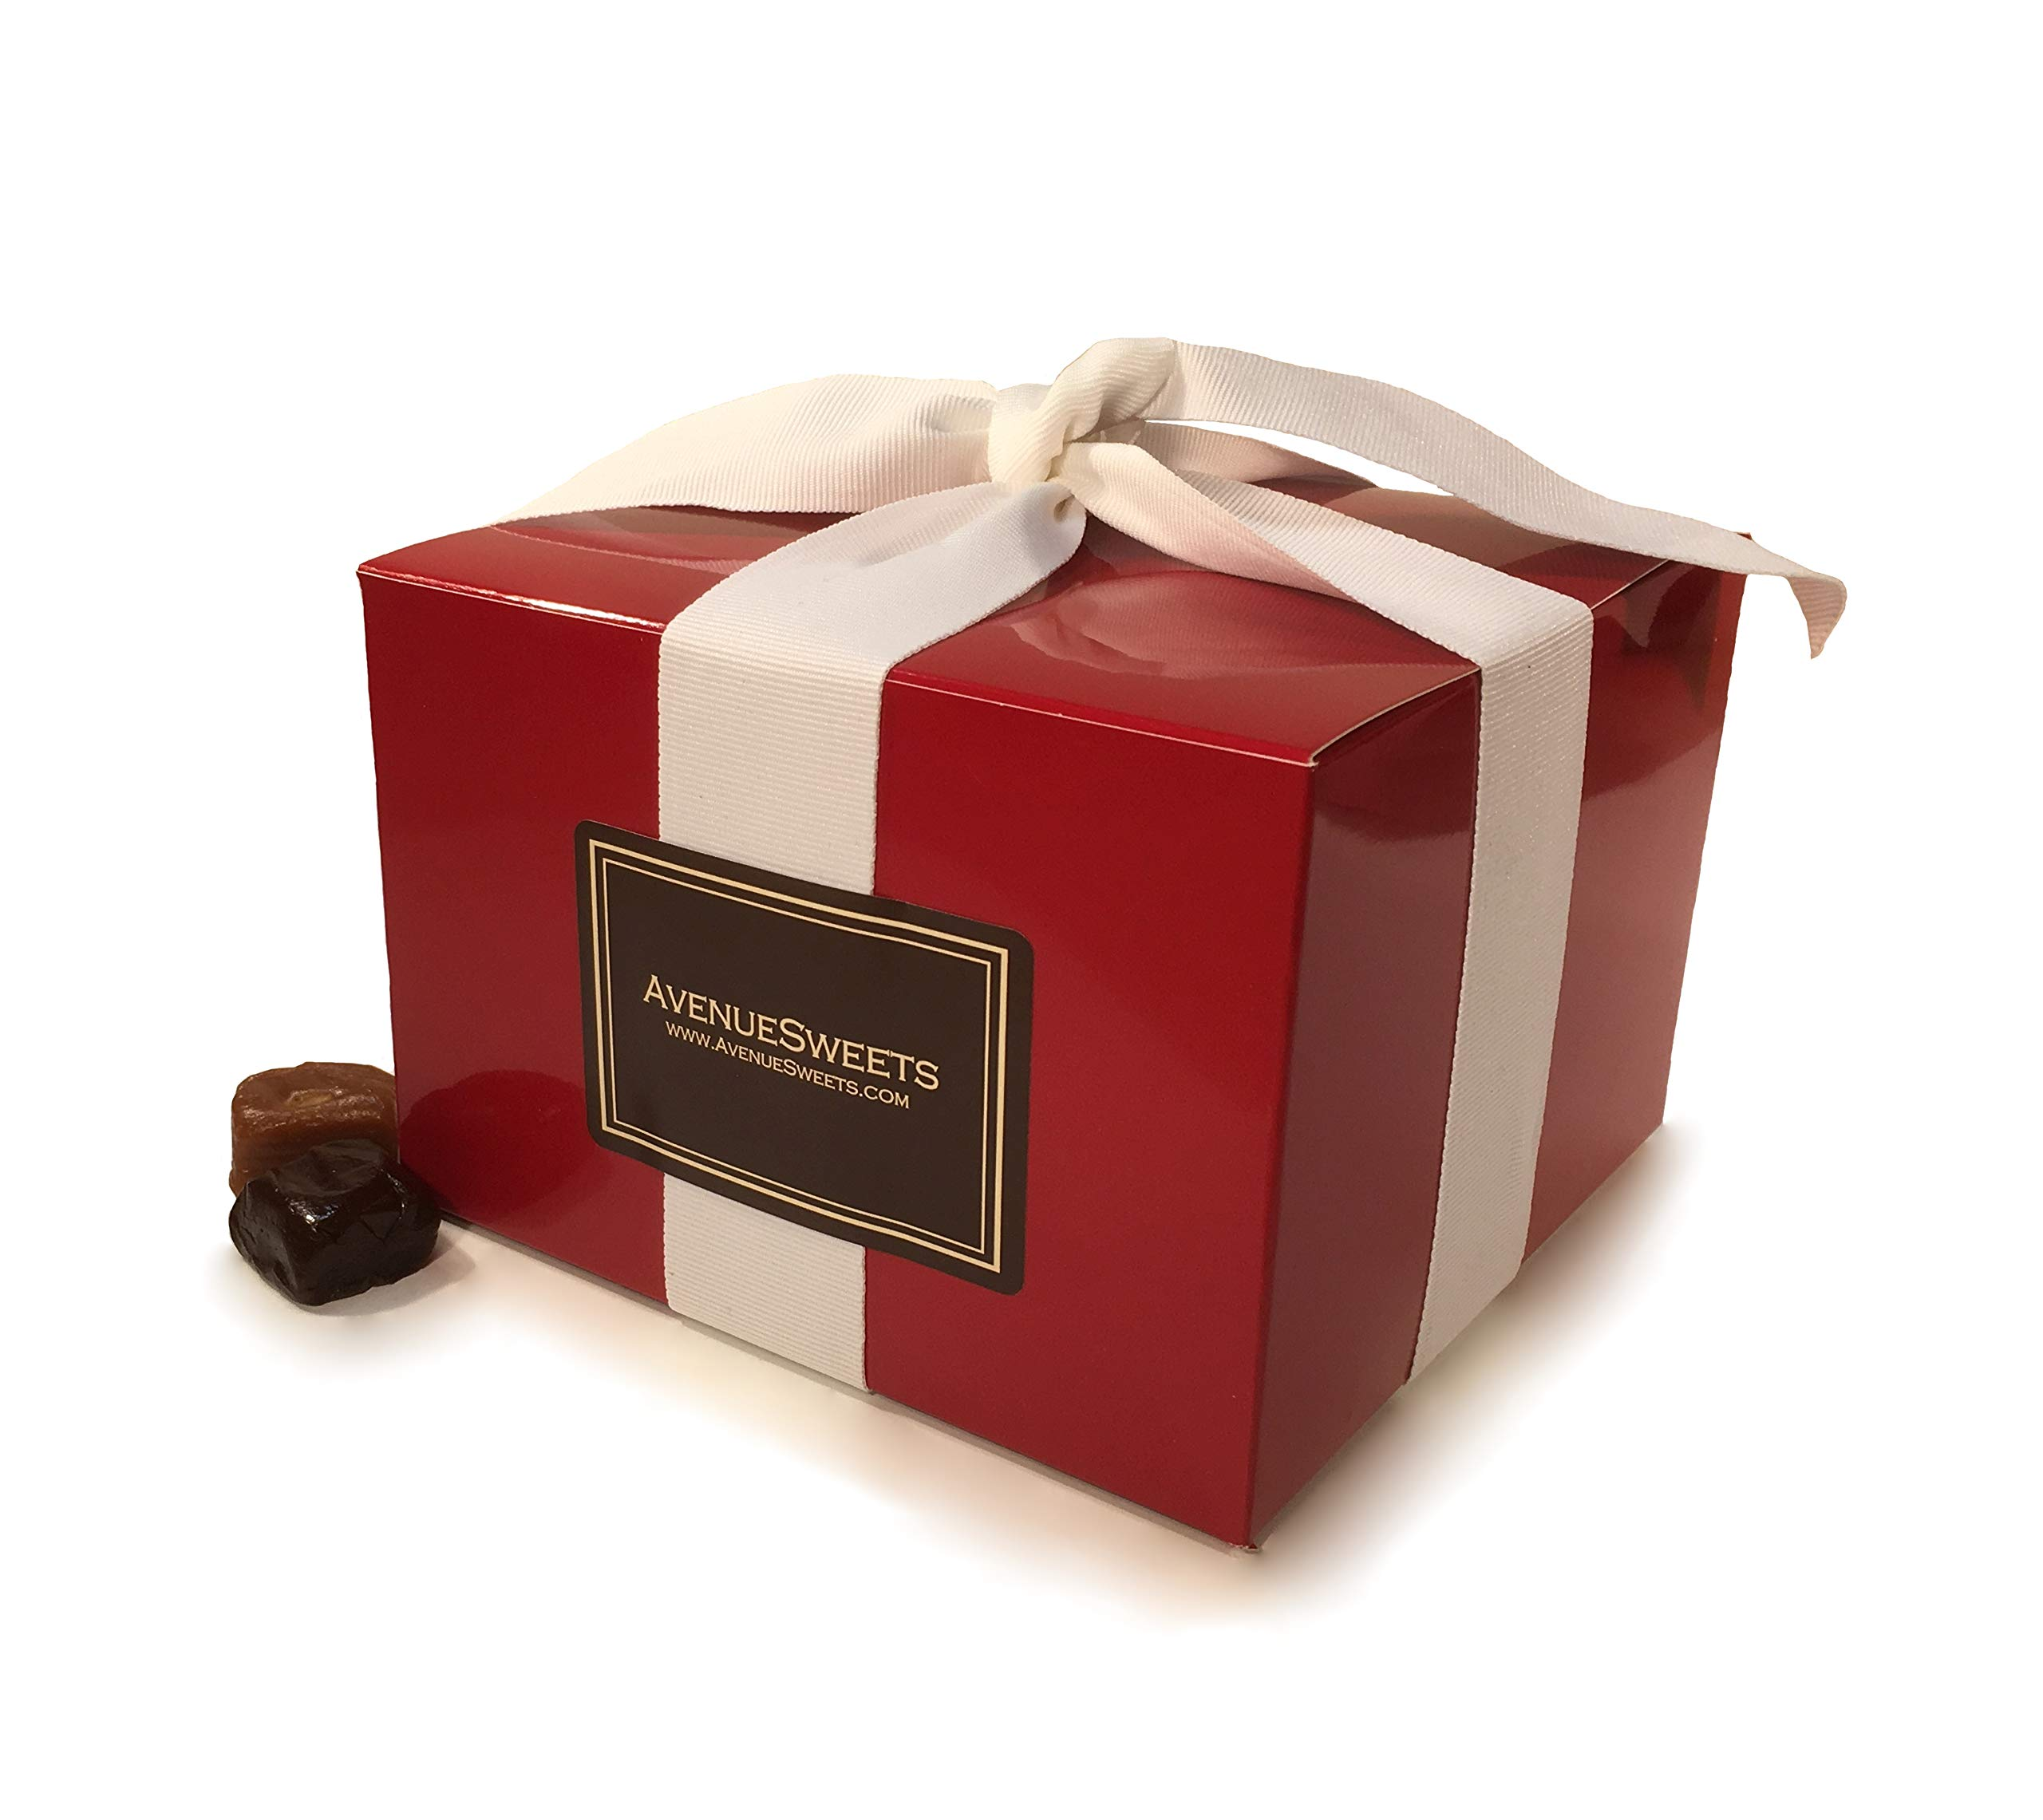 AvenueSweets - Handcrafted Individually Wrapped Soft Caramels - Red 1.5 lb Gift Box - Customize Your Flavors by AvenueSweets